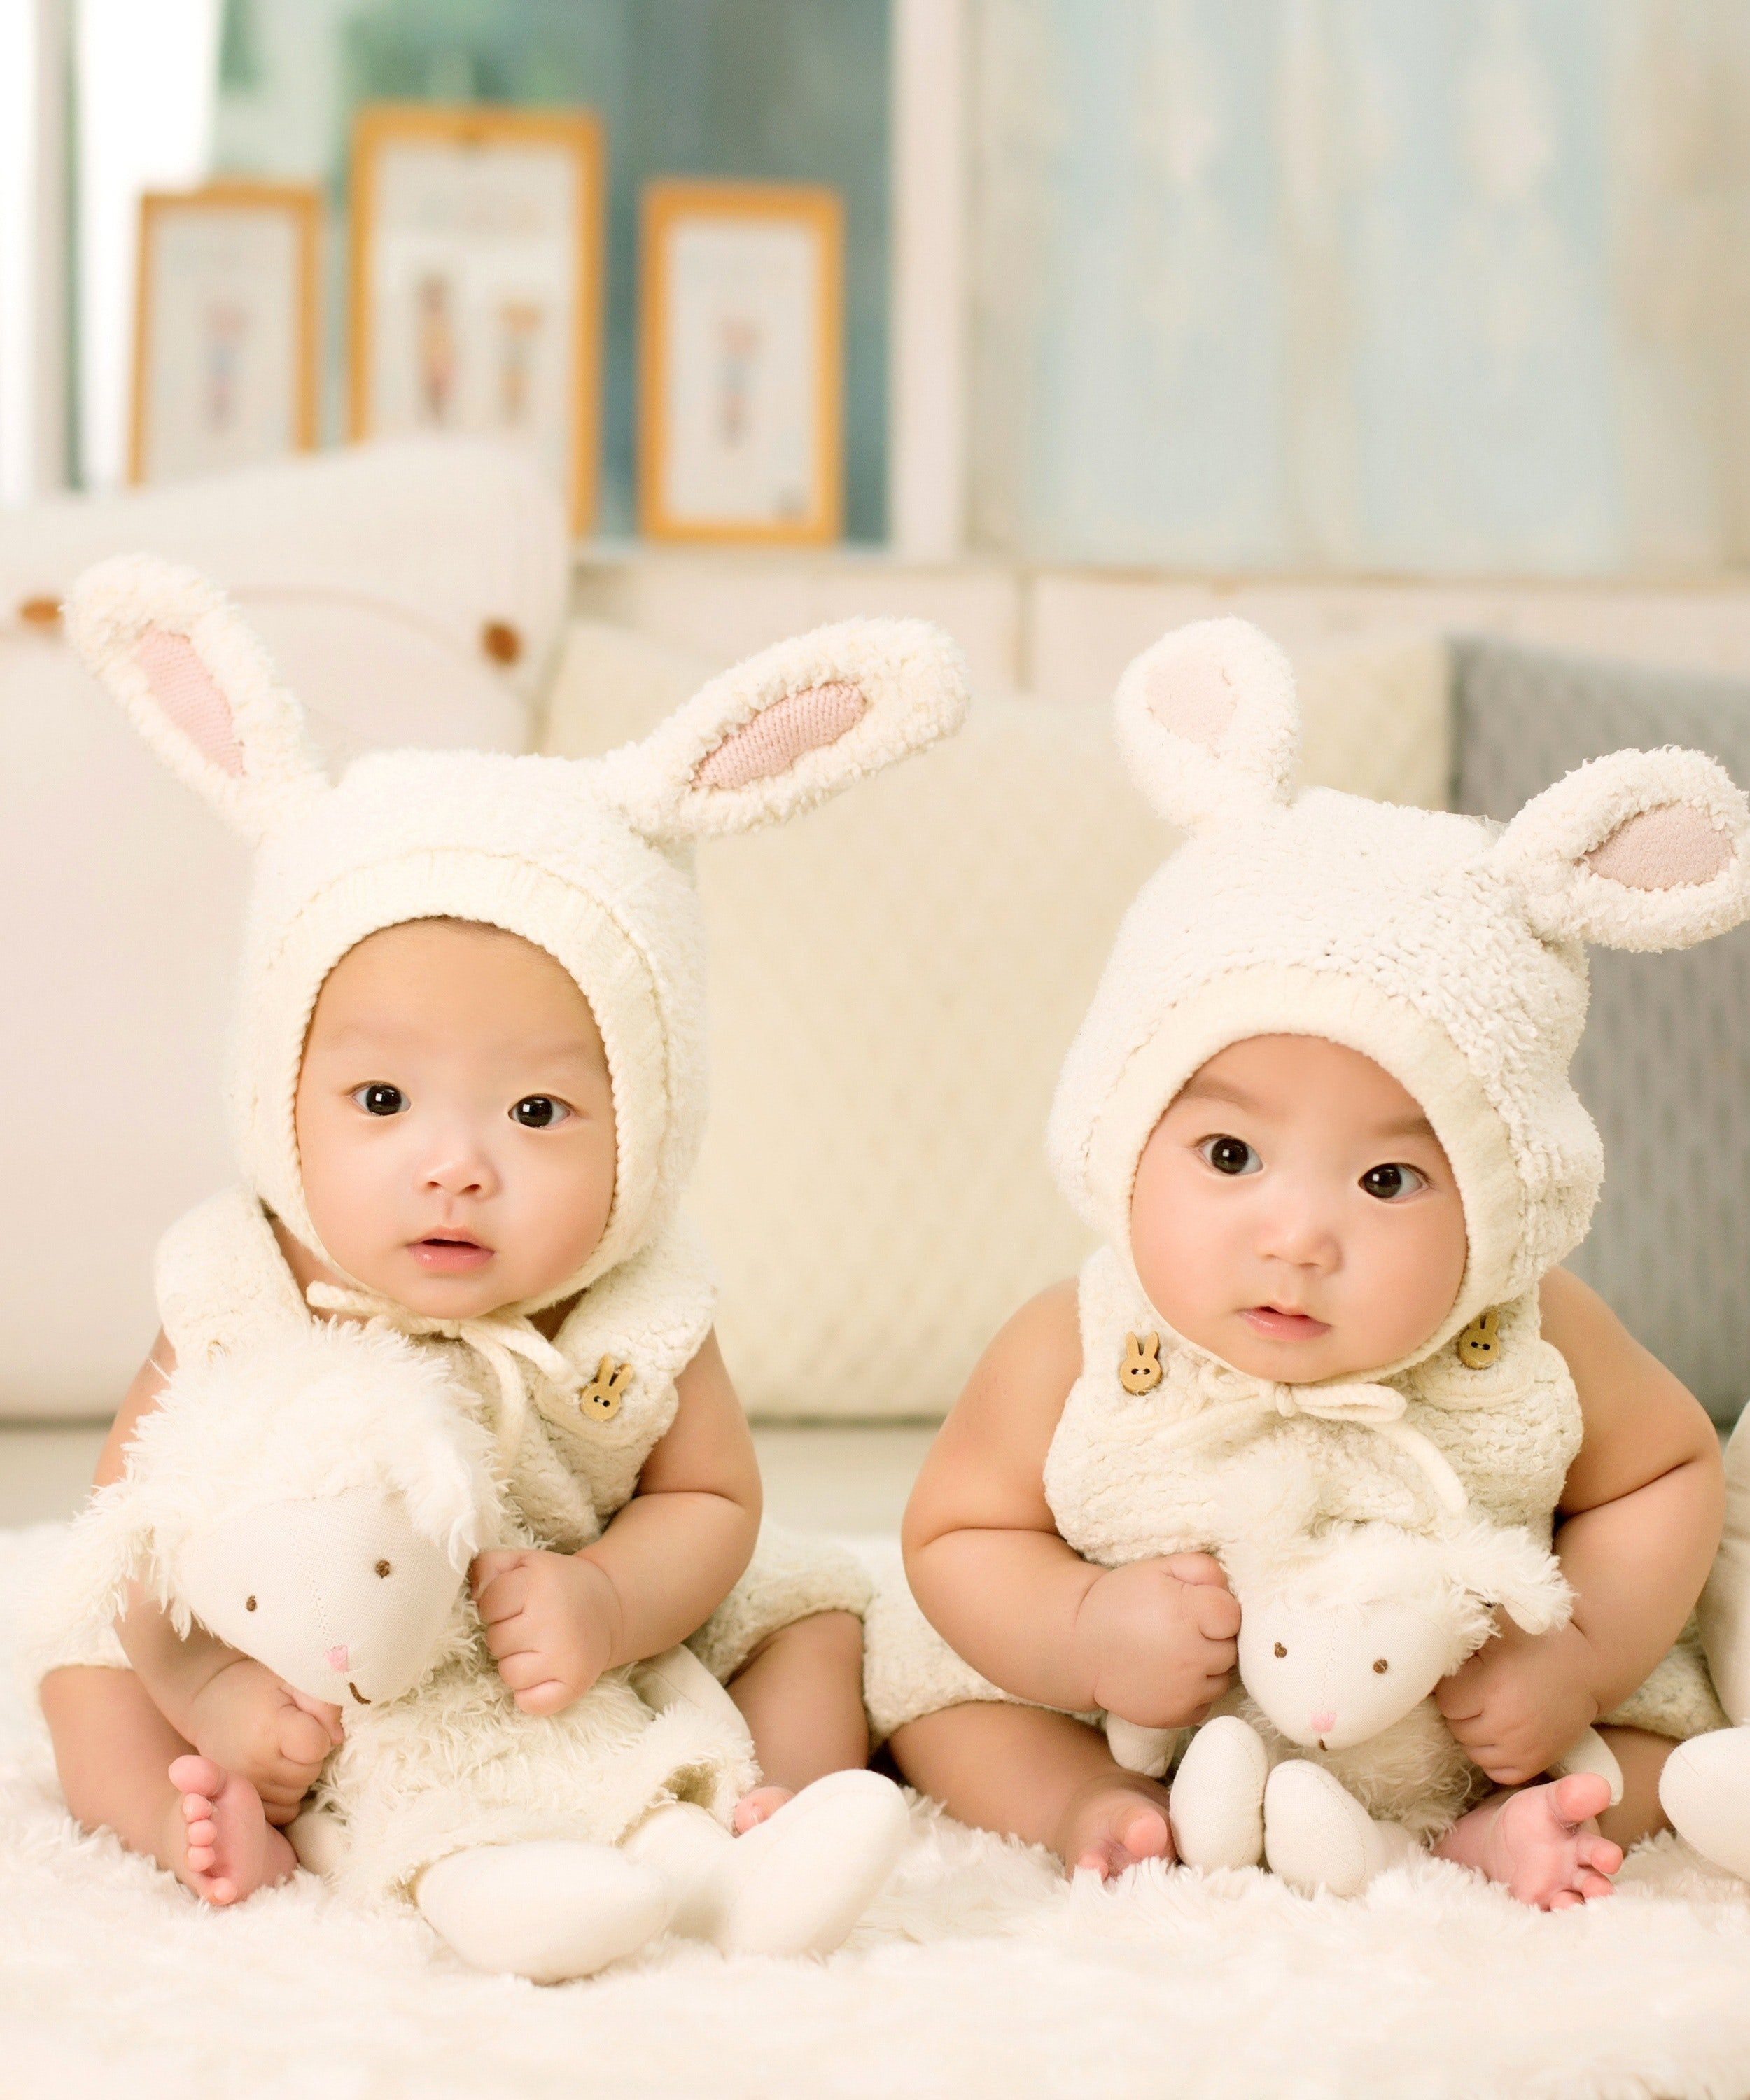 An image of baby twins   Photo: Pexels